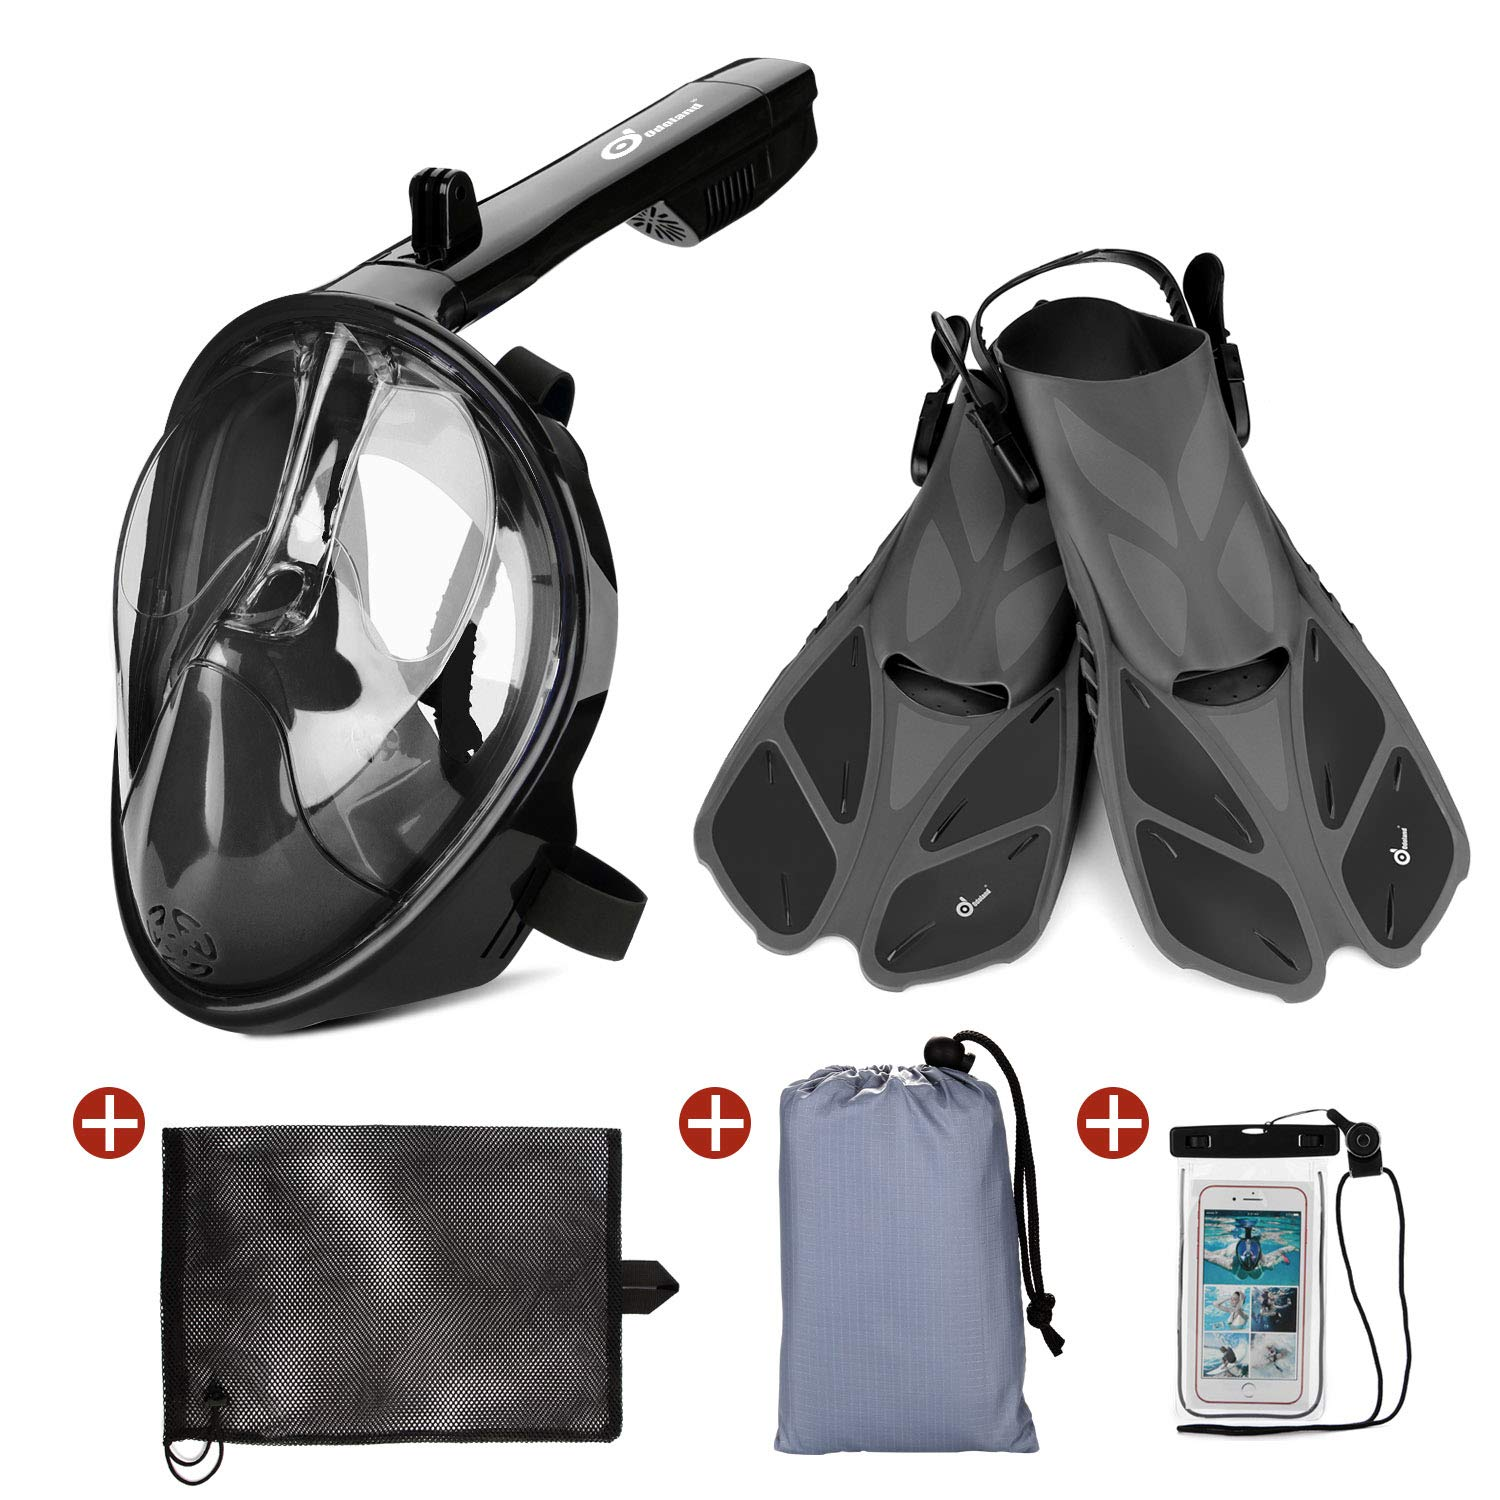 Odoland 5-in-1 Snorkel Set – Full Face Diving Mask(S/M) Compatible with GoPro Mount,Snorkel Fins(S/M), Portable Mesh Bag, Waterproof Case with Daily Backpack – Great Gear for Adults & Youth